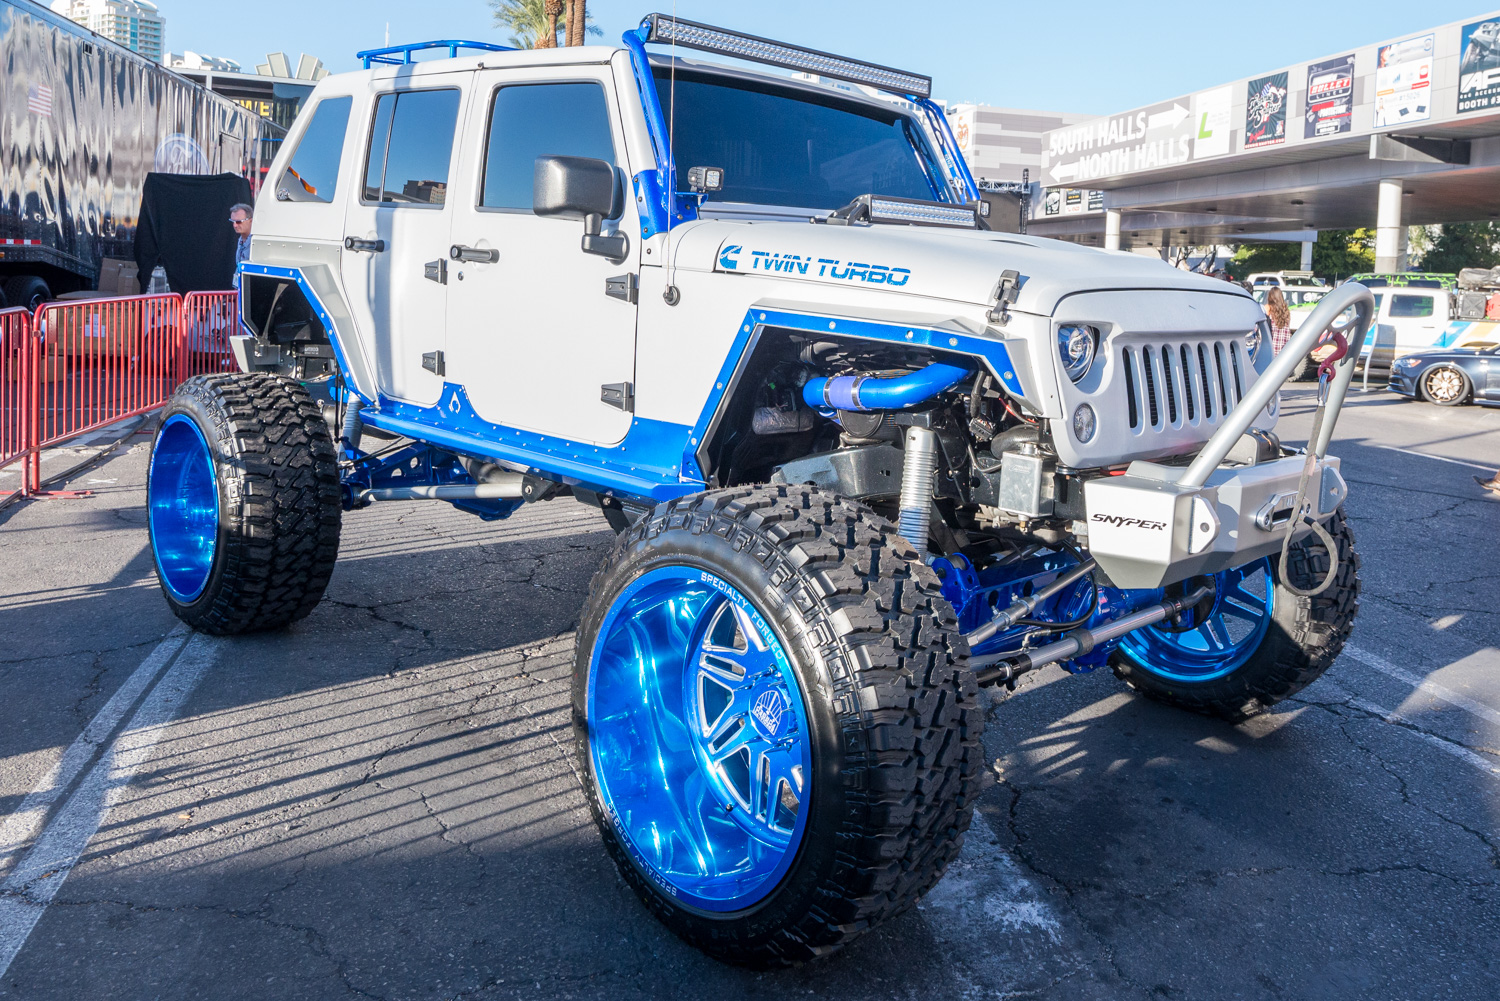 Wrangler Is King Custom Builds Of The OffRoad Icon - Jeep car show near me